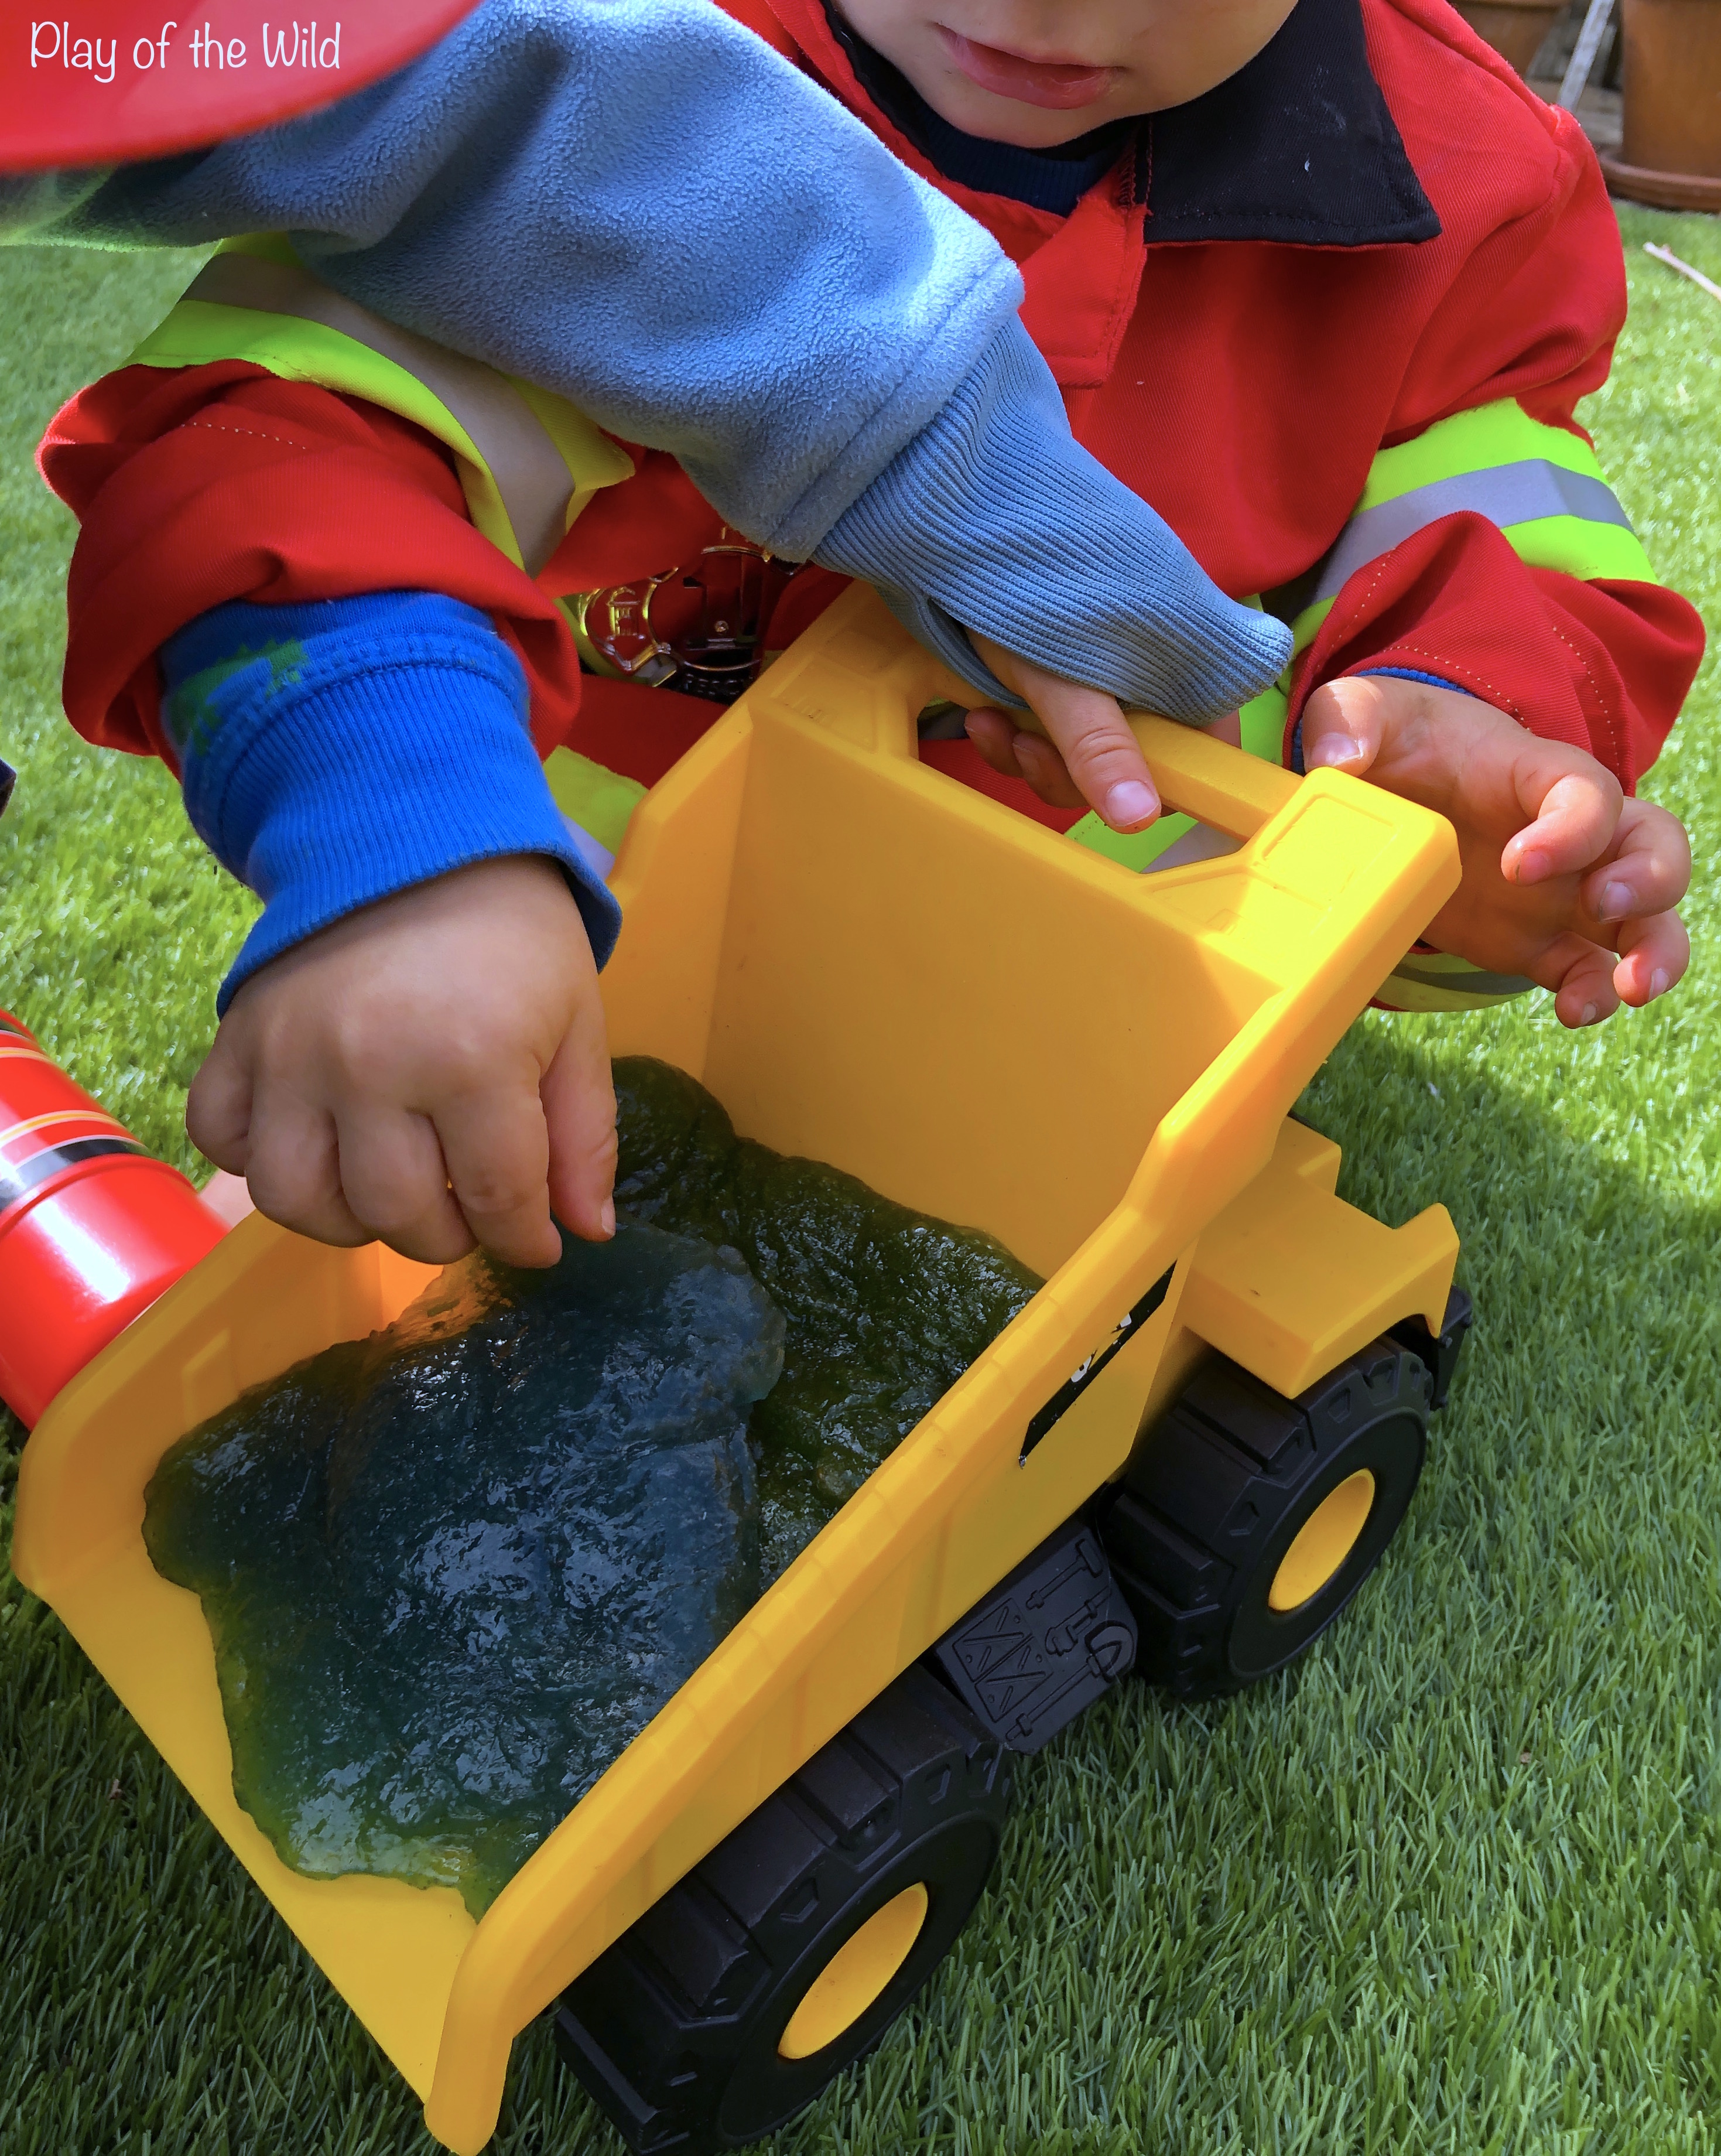 non-toxic, taste-safe slime for children babies and toddlers